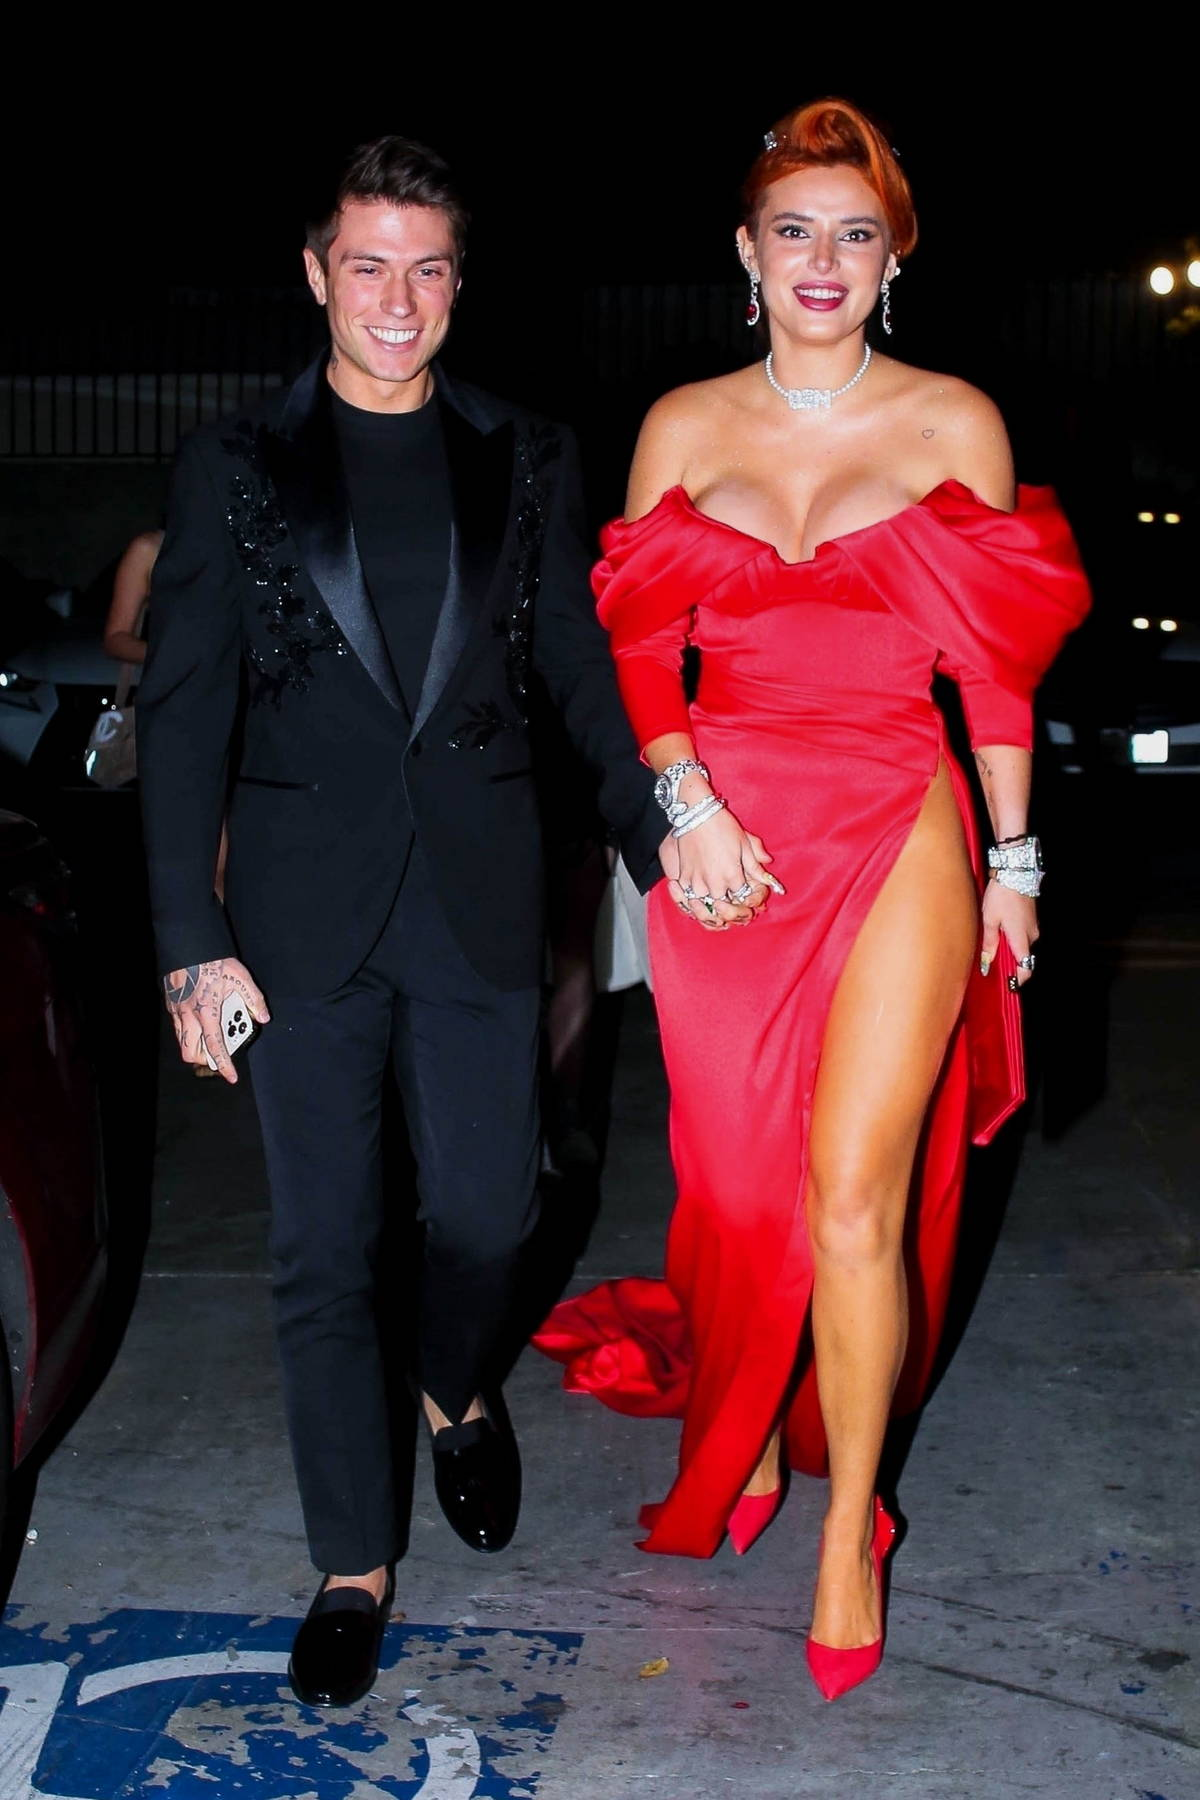 Bella Thorne looks stunning in a side-slit red gown for her engagement party with Benjamin Mascolo in West Hollywood, California